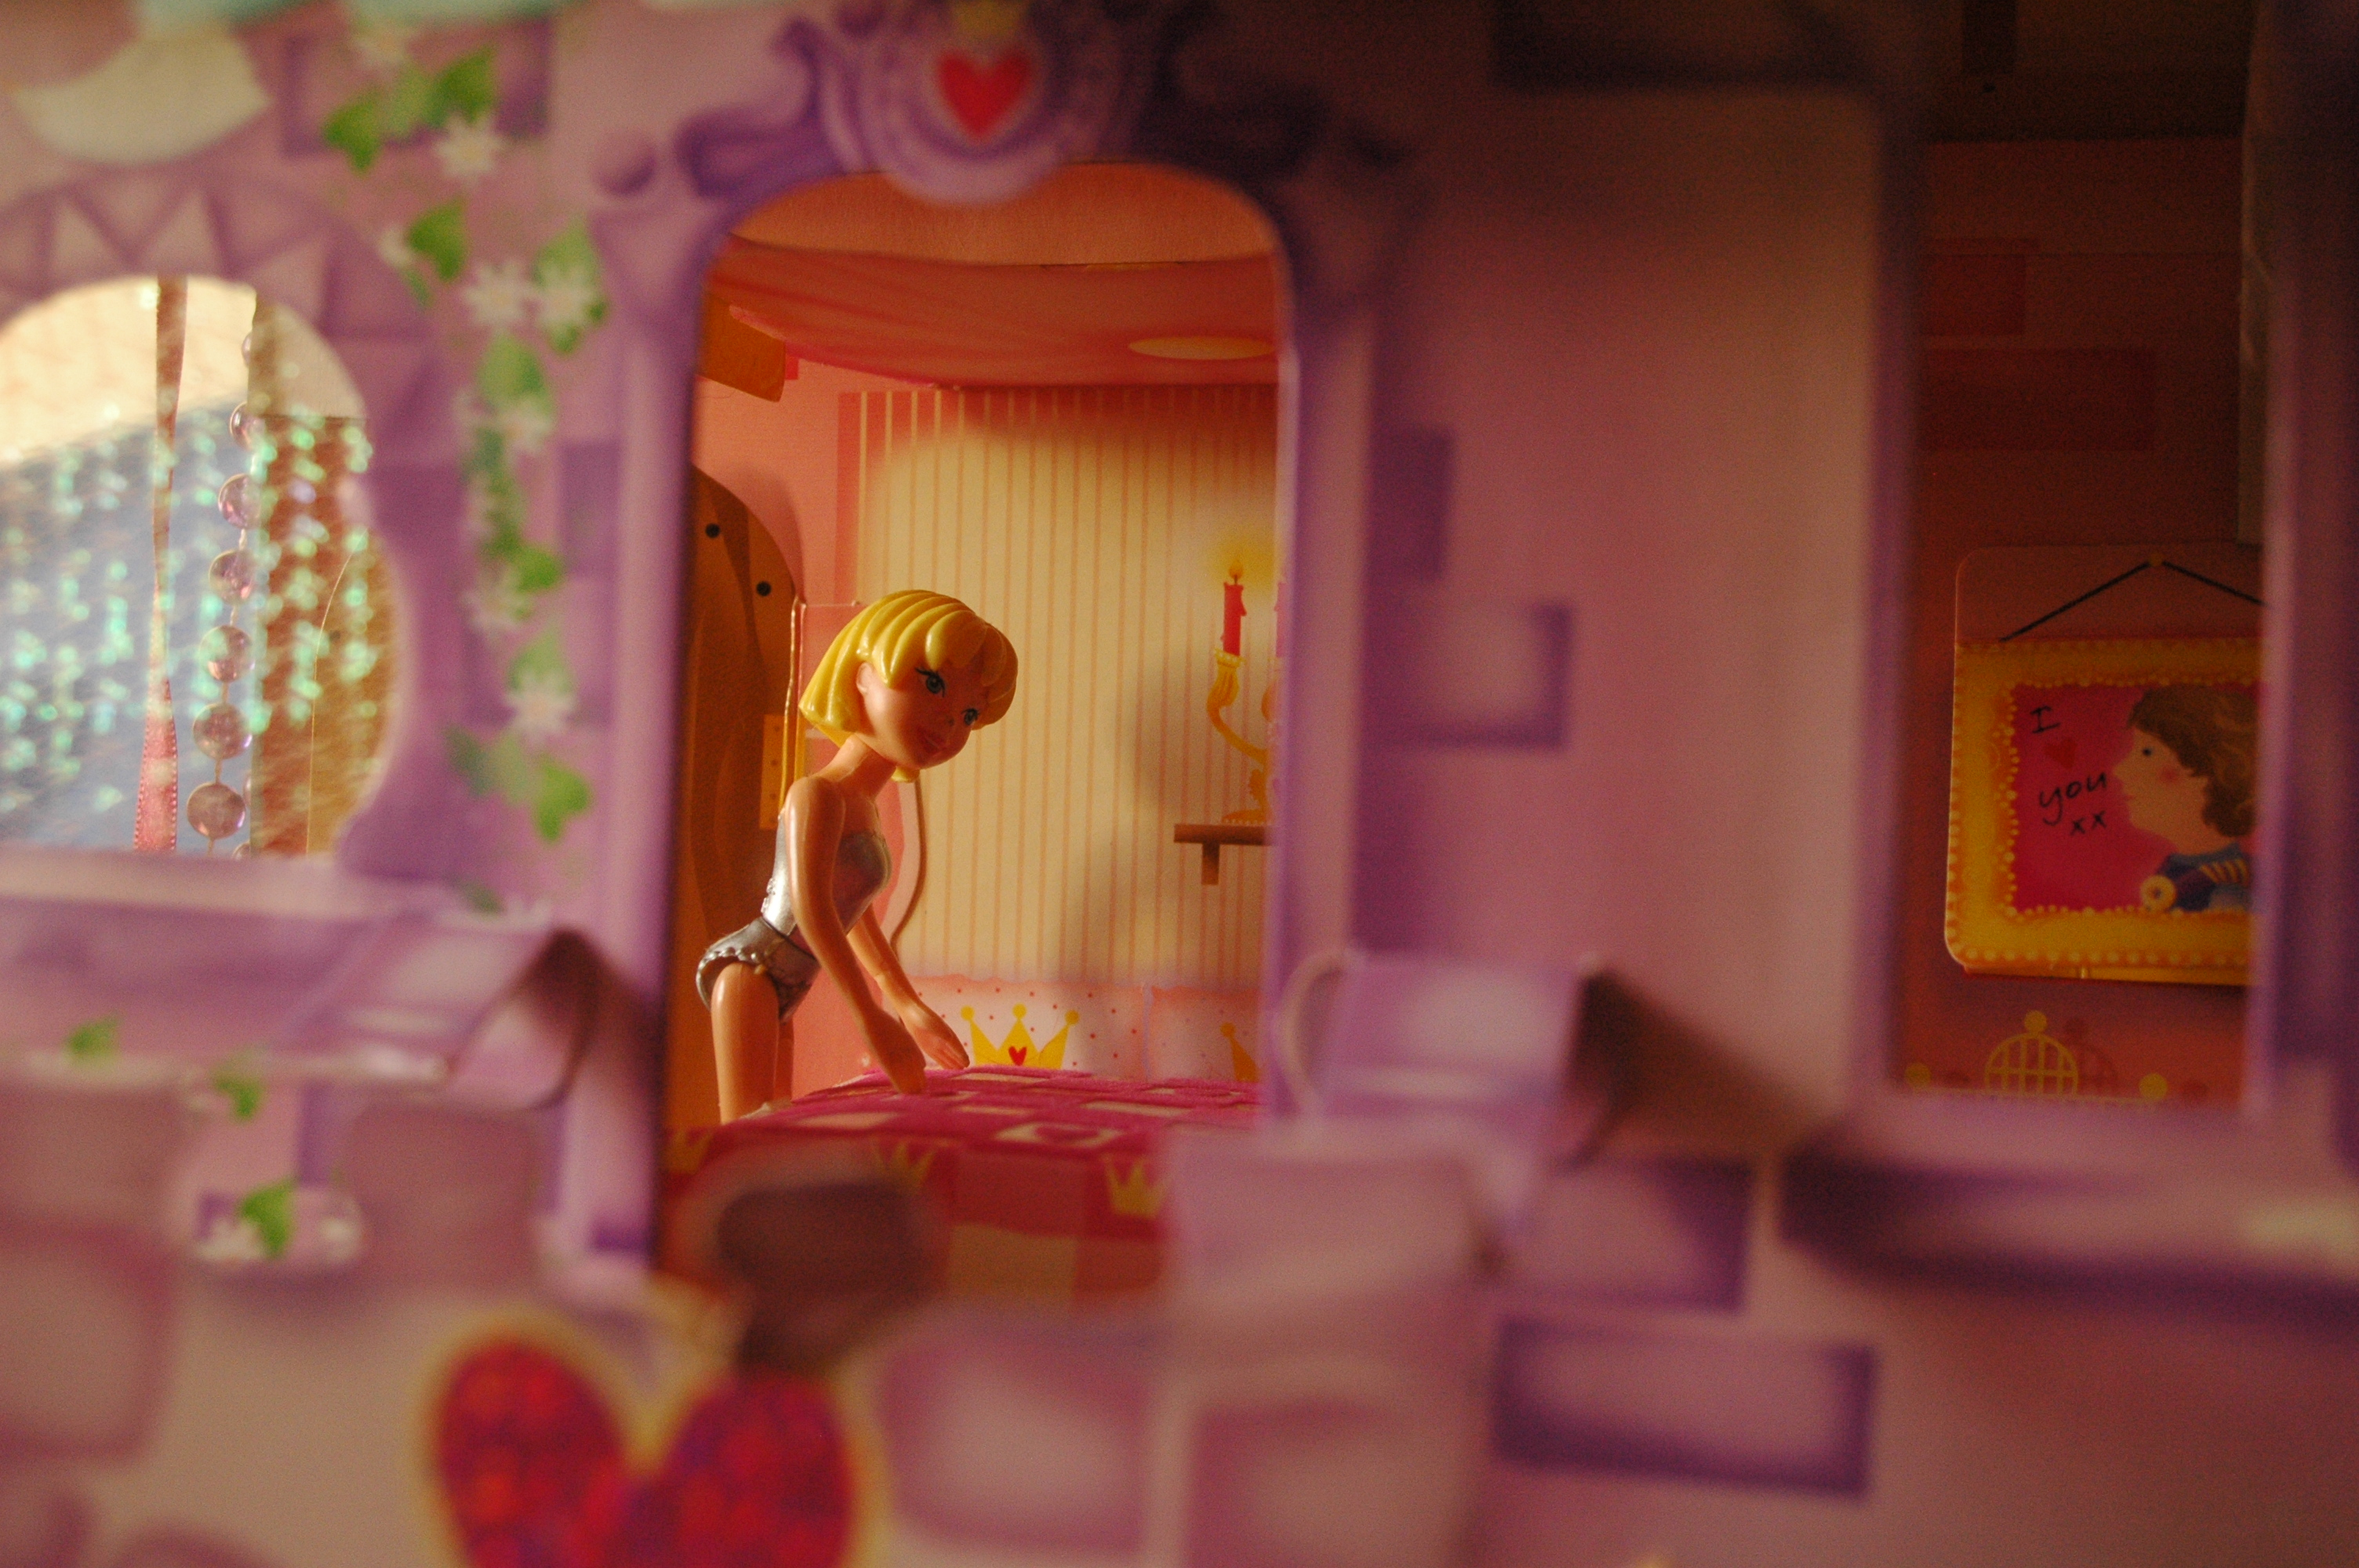 16608 || 3314 || Toy stories - looking